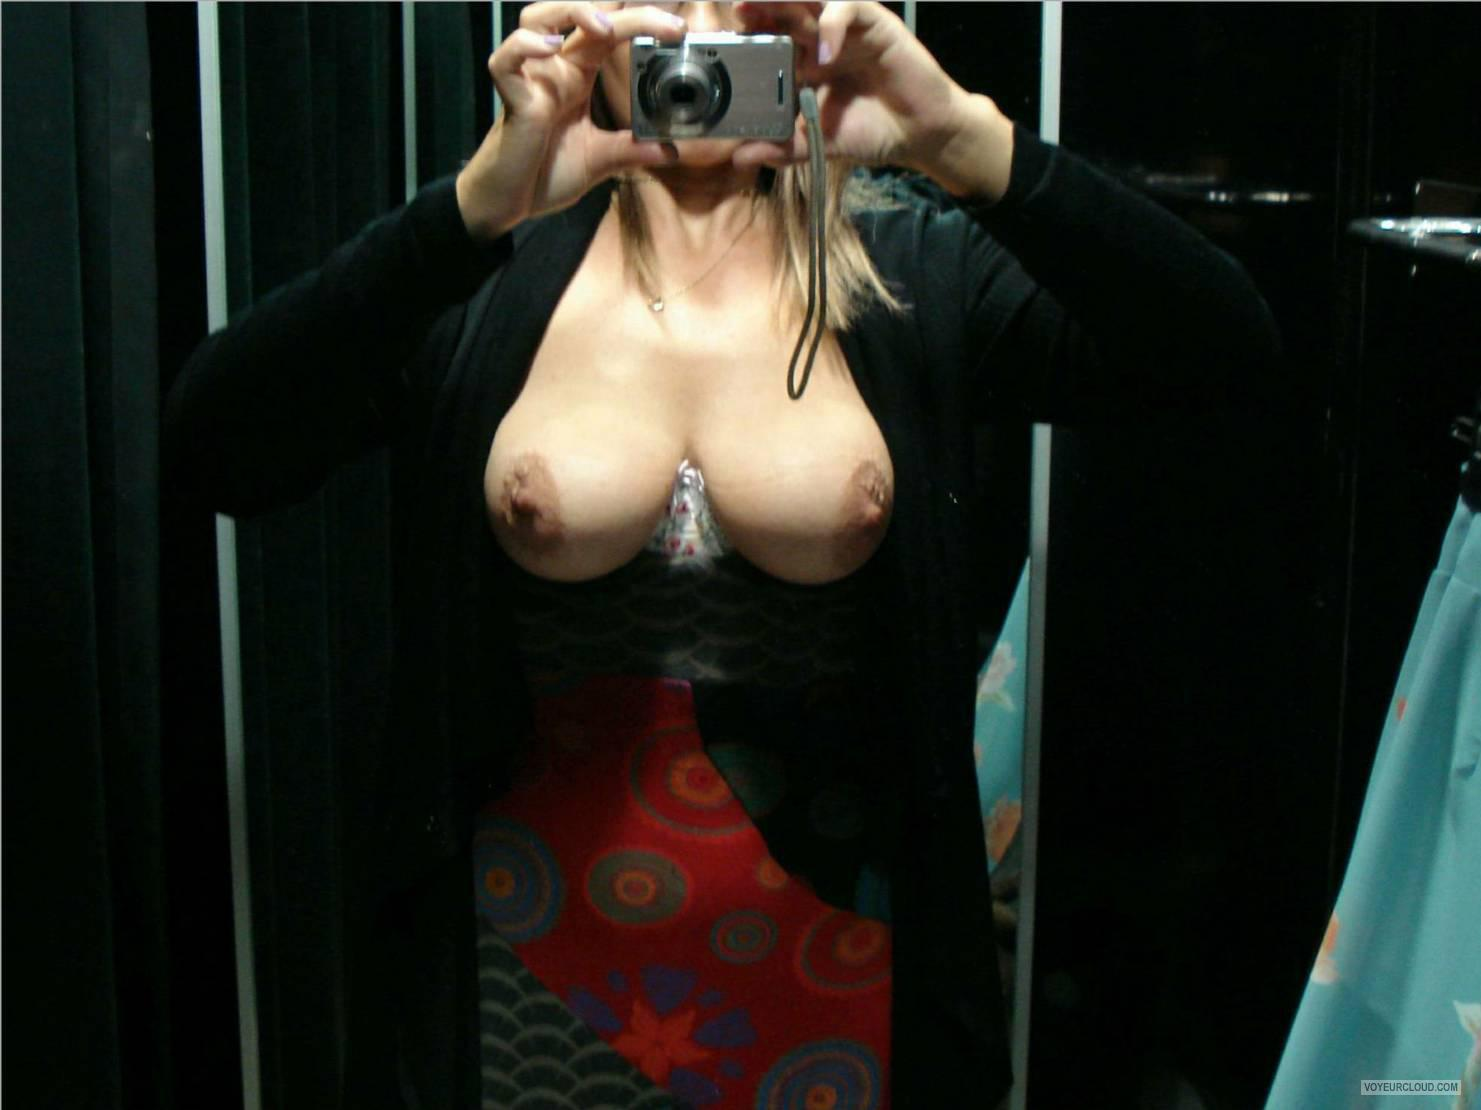 Big Tits Of My Wife Selfie by Ukwife4u2c